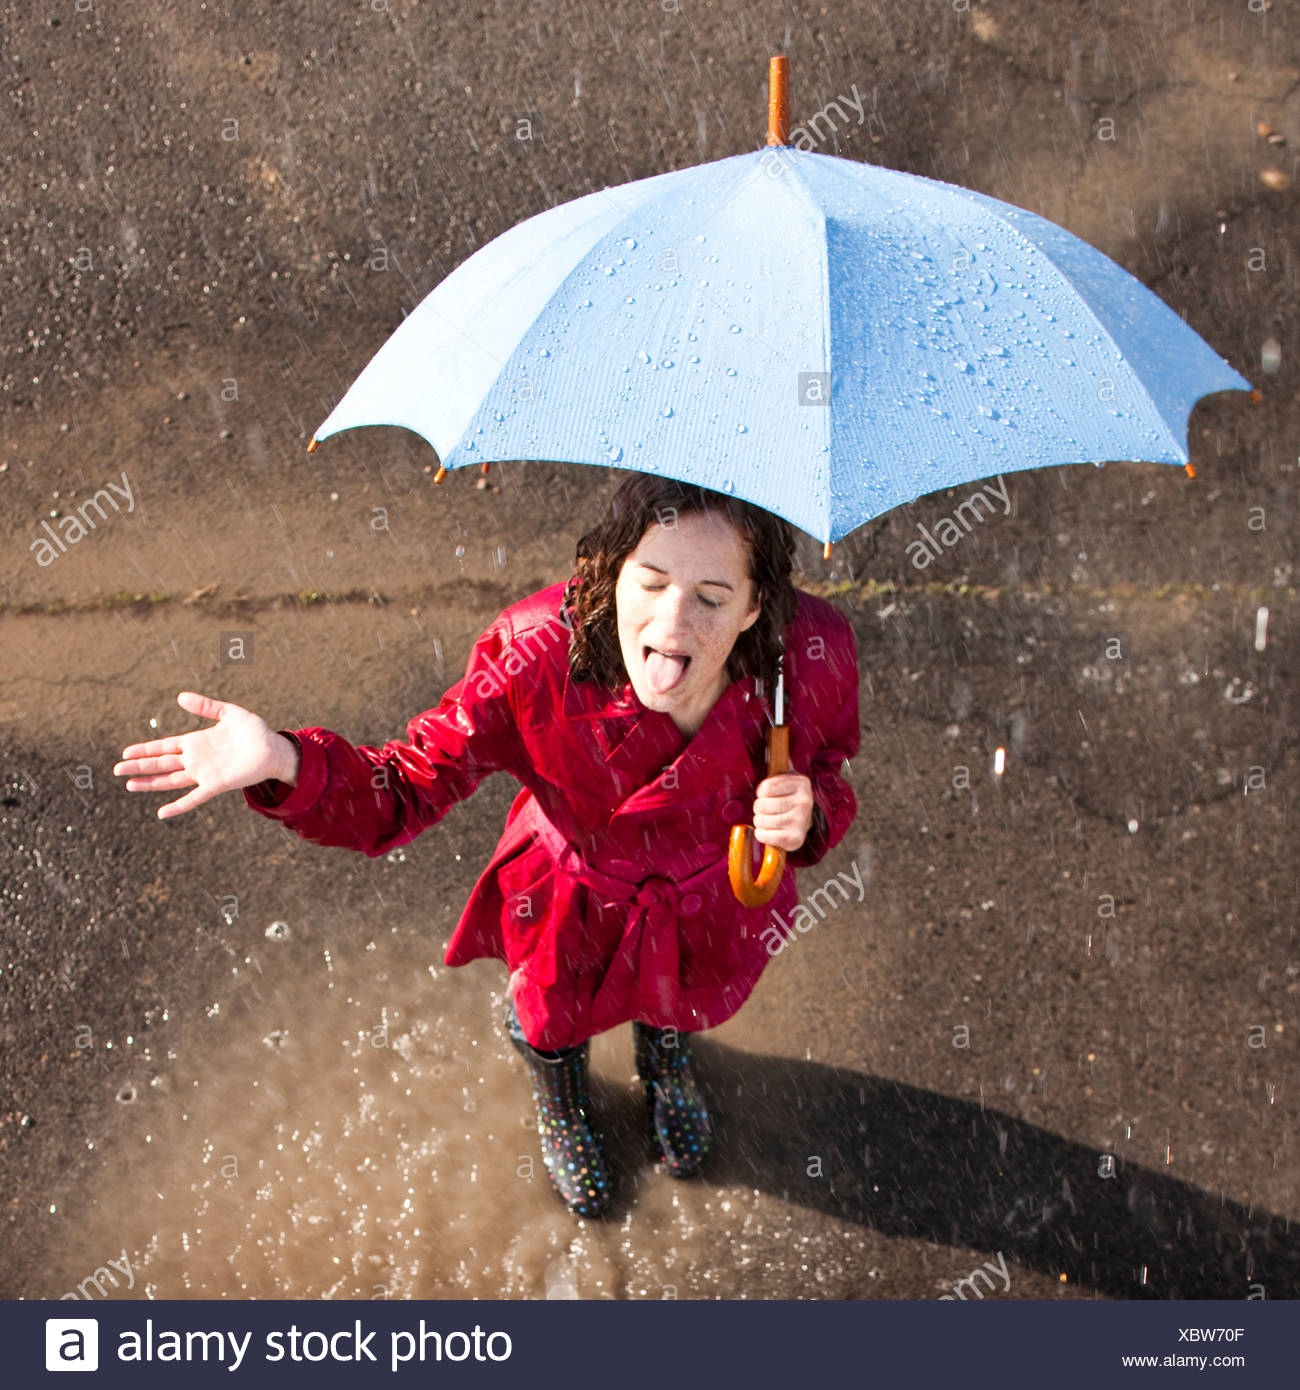 Young woman standing in rain holding umbrella - Stock Image